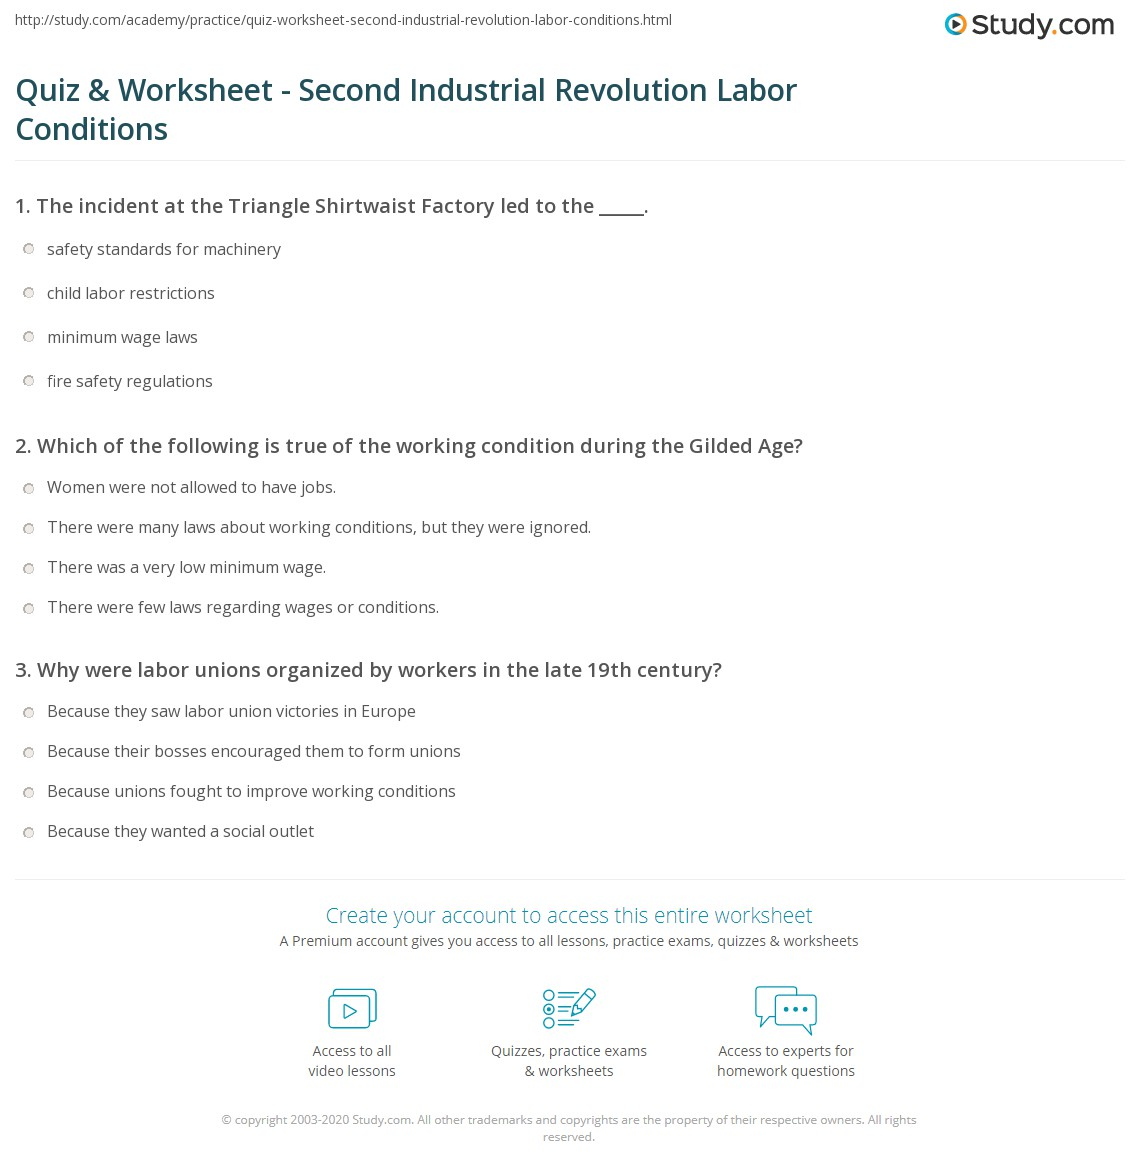 quiz worksheet second industrial revolution labor conditions print labor conditions during the second industrial revolution worksheet